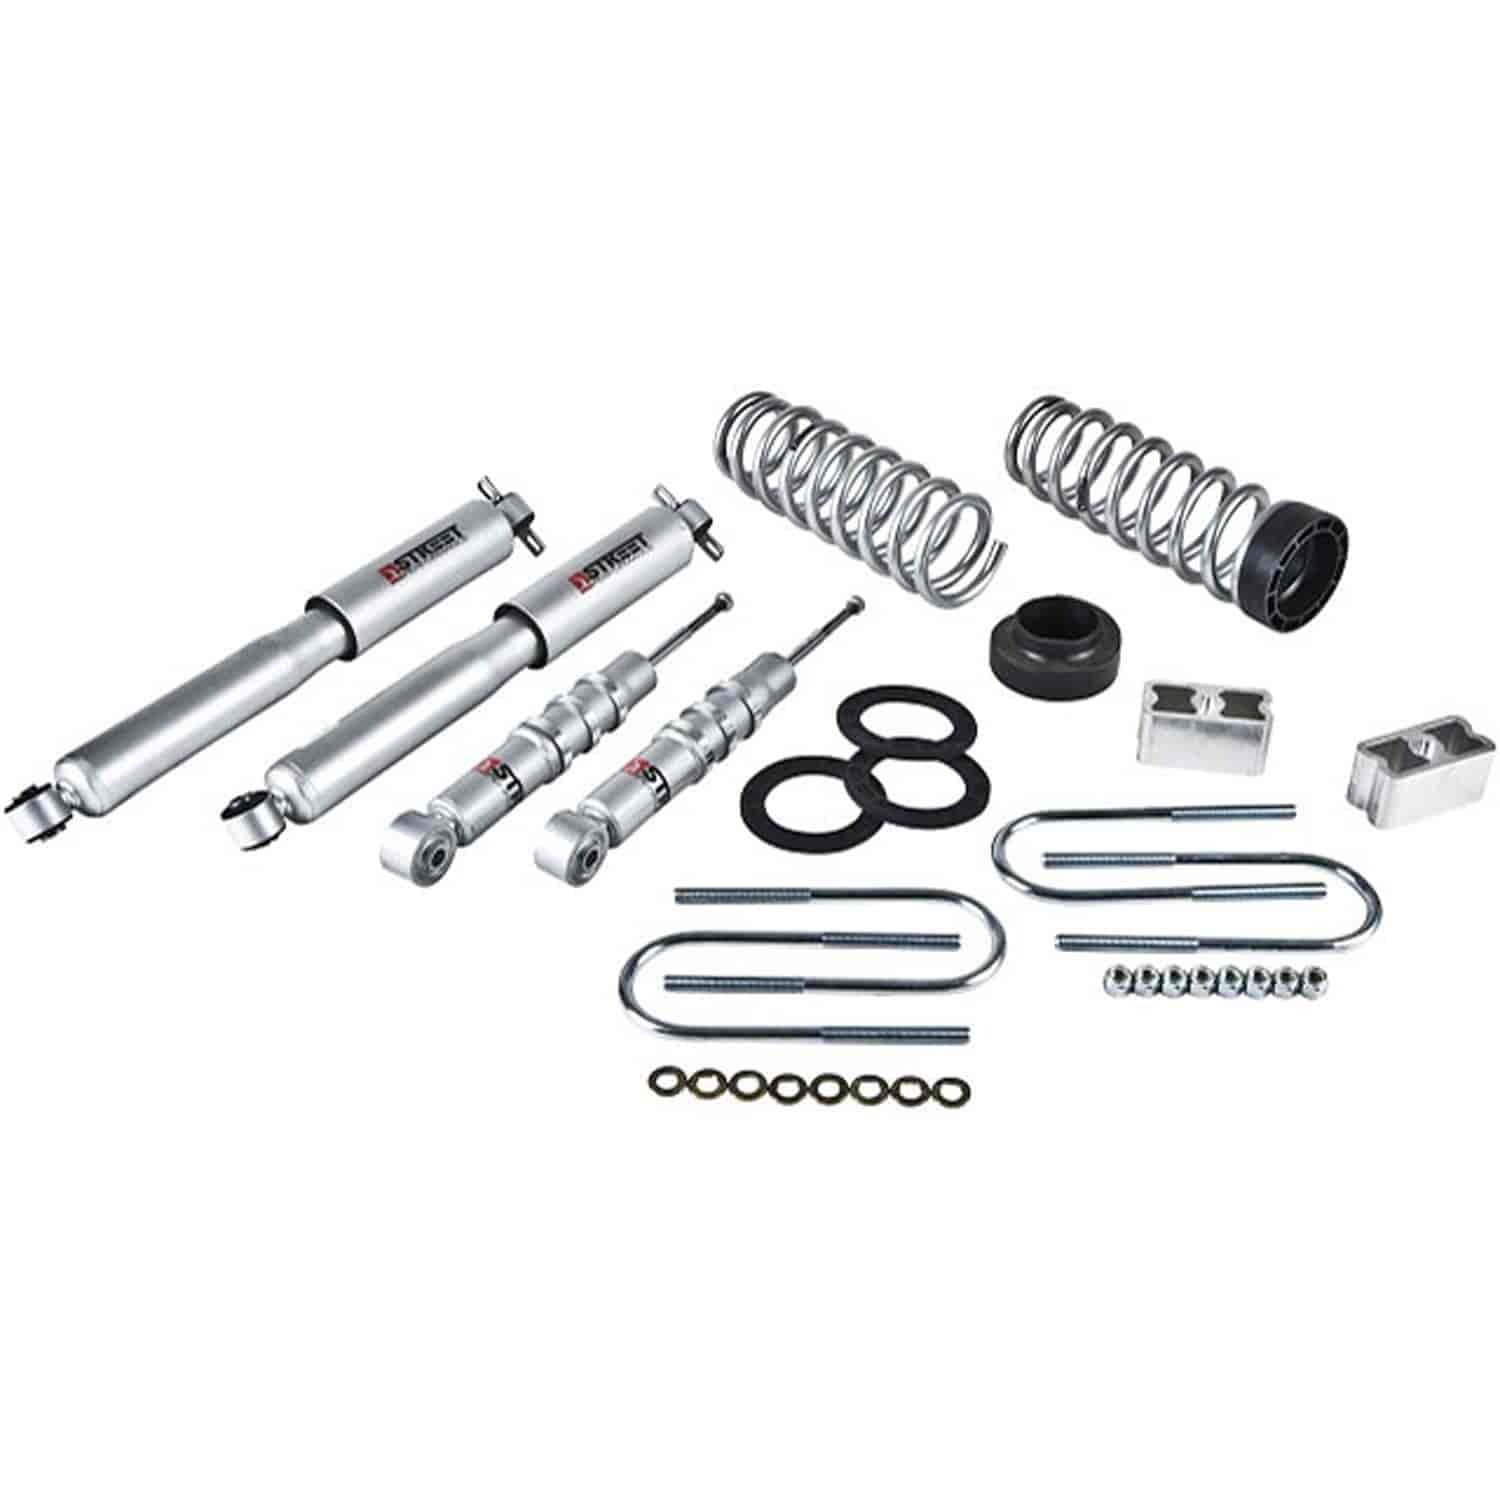 Belltech 607SP: Complete Lowering Kit for 2004-2012 Chevy